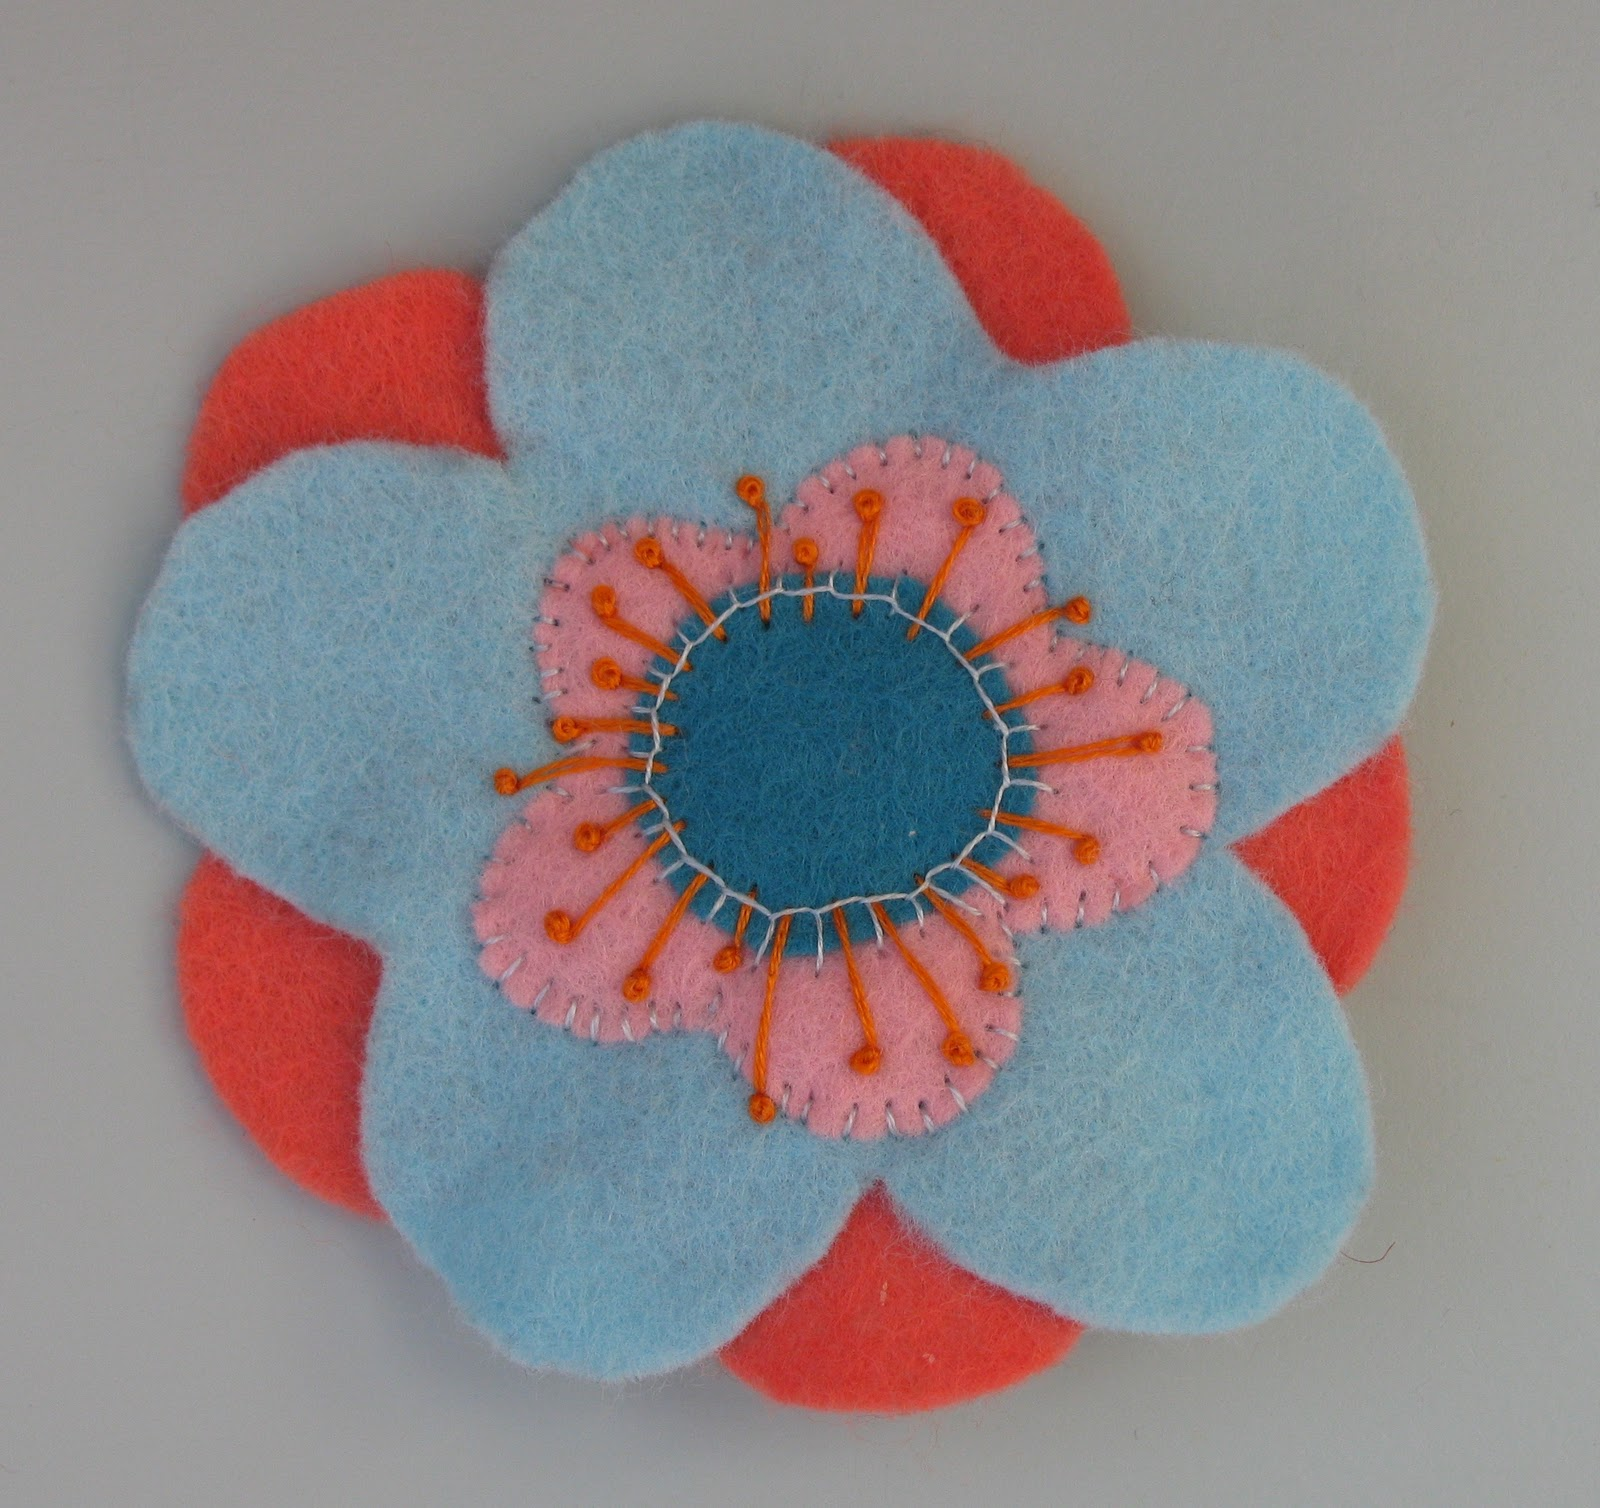 The Woolly Brew Felt Flower kit